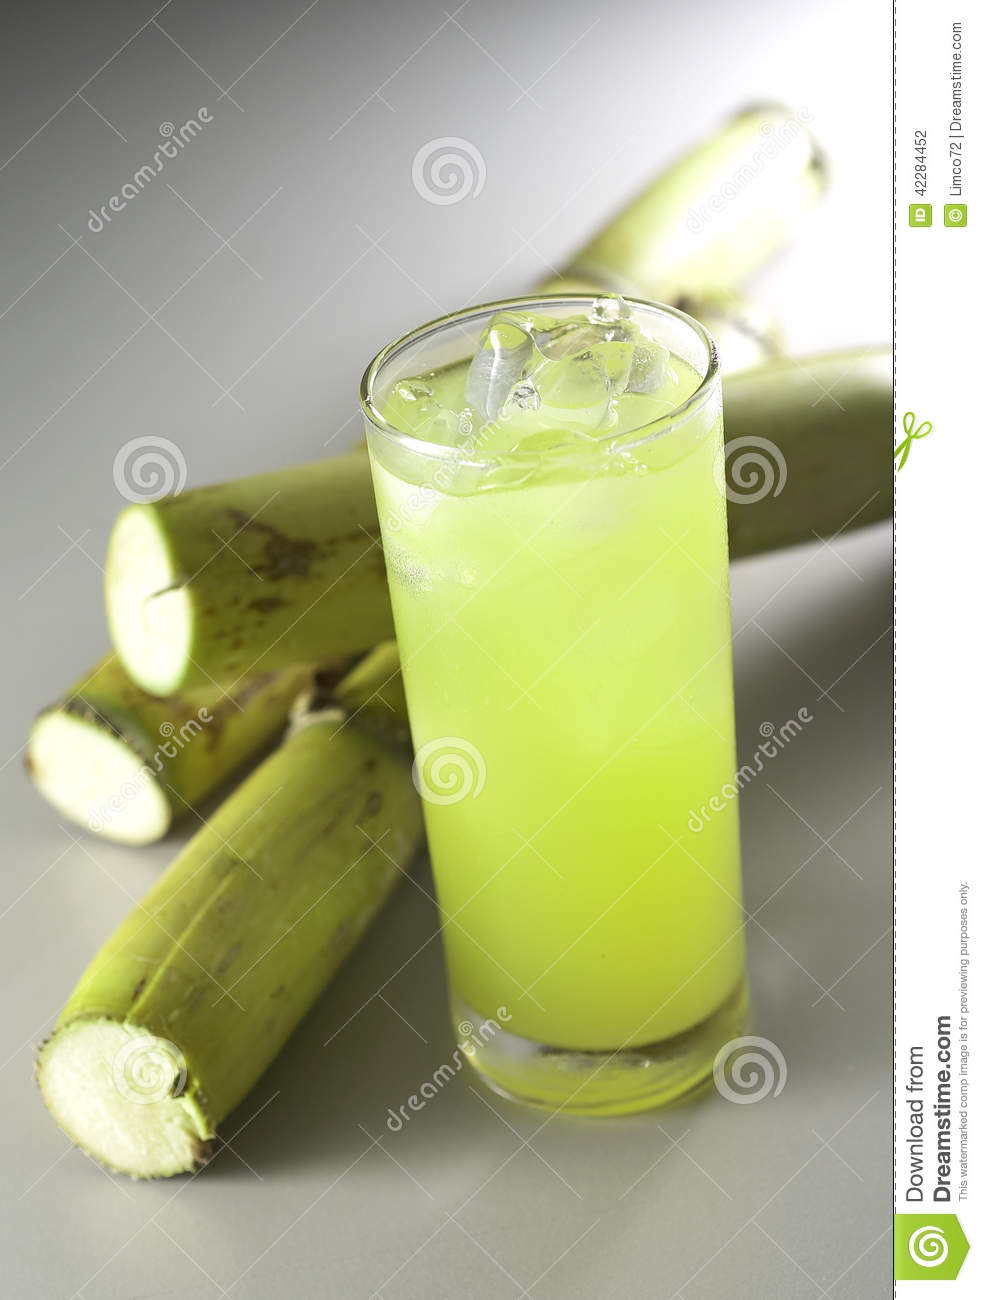 Stock photography sugar cane juice surrounded by sugar cane image